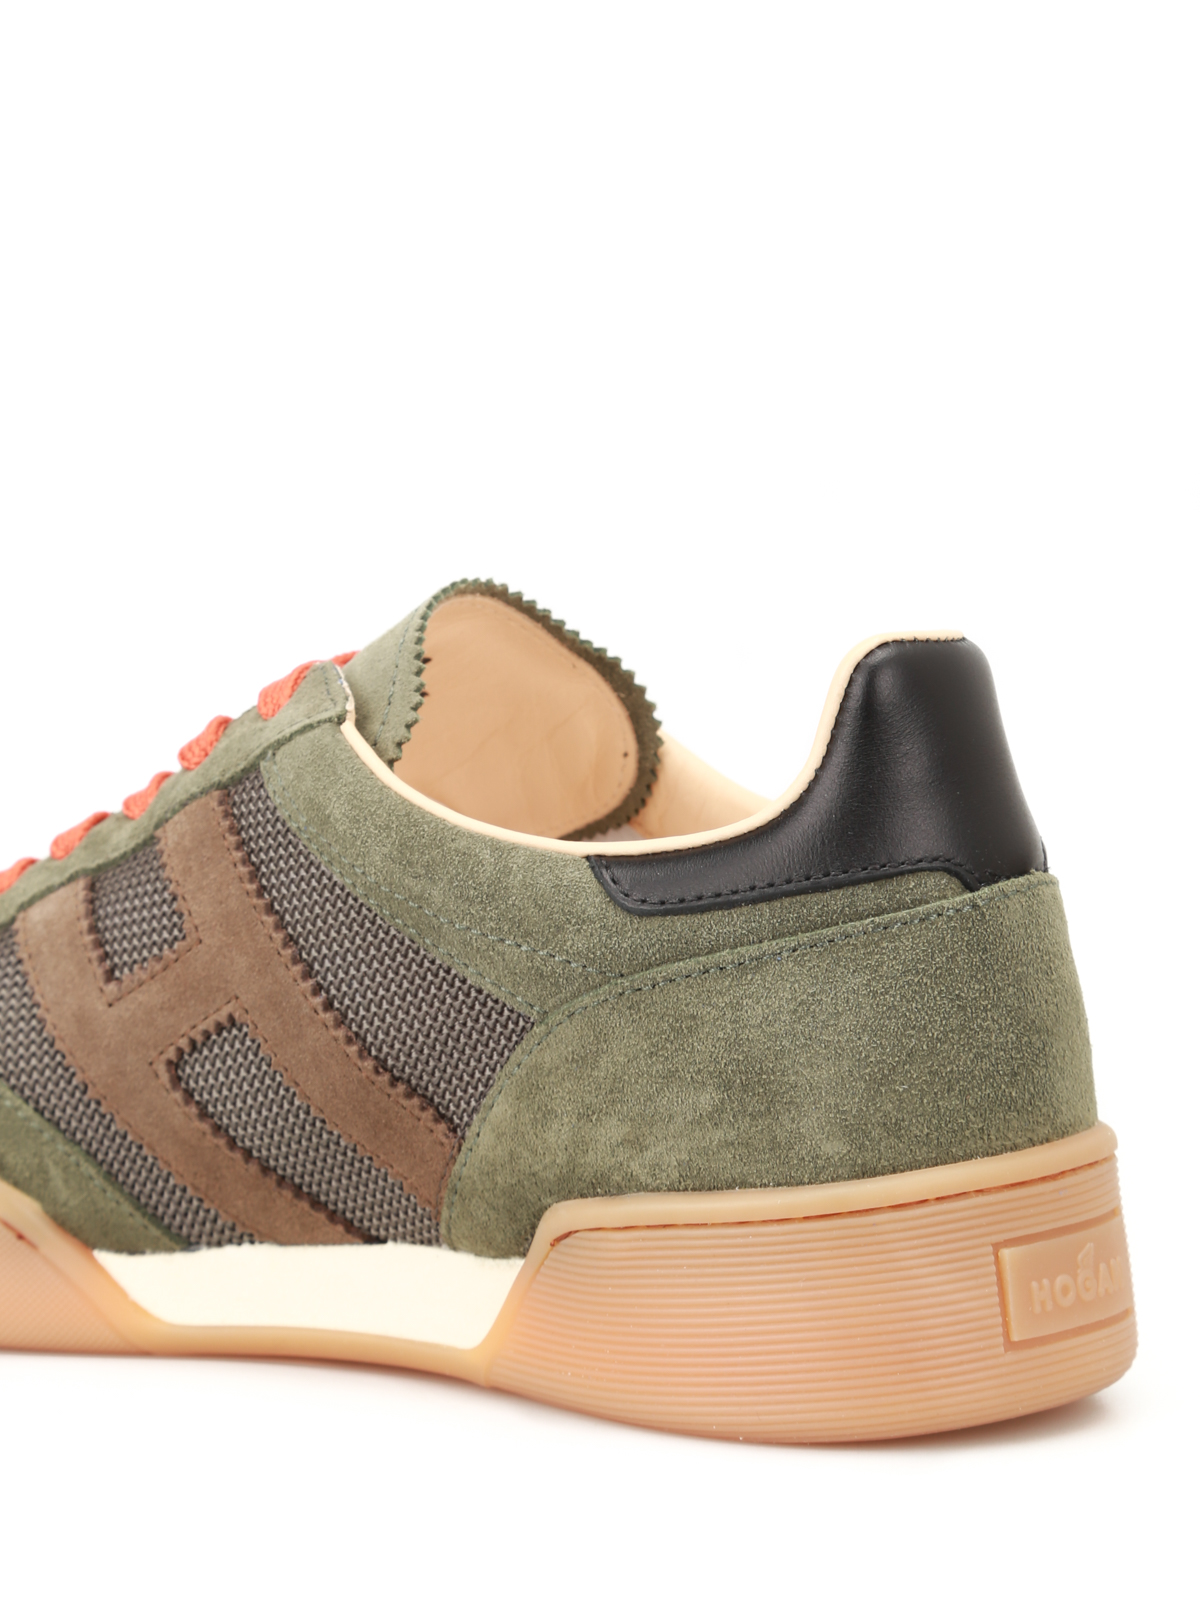 Trainers Hogan - H357 suede and fabric sneakers - HXM3570AC40IPK931L